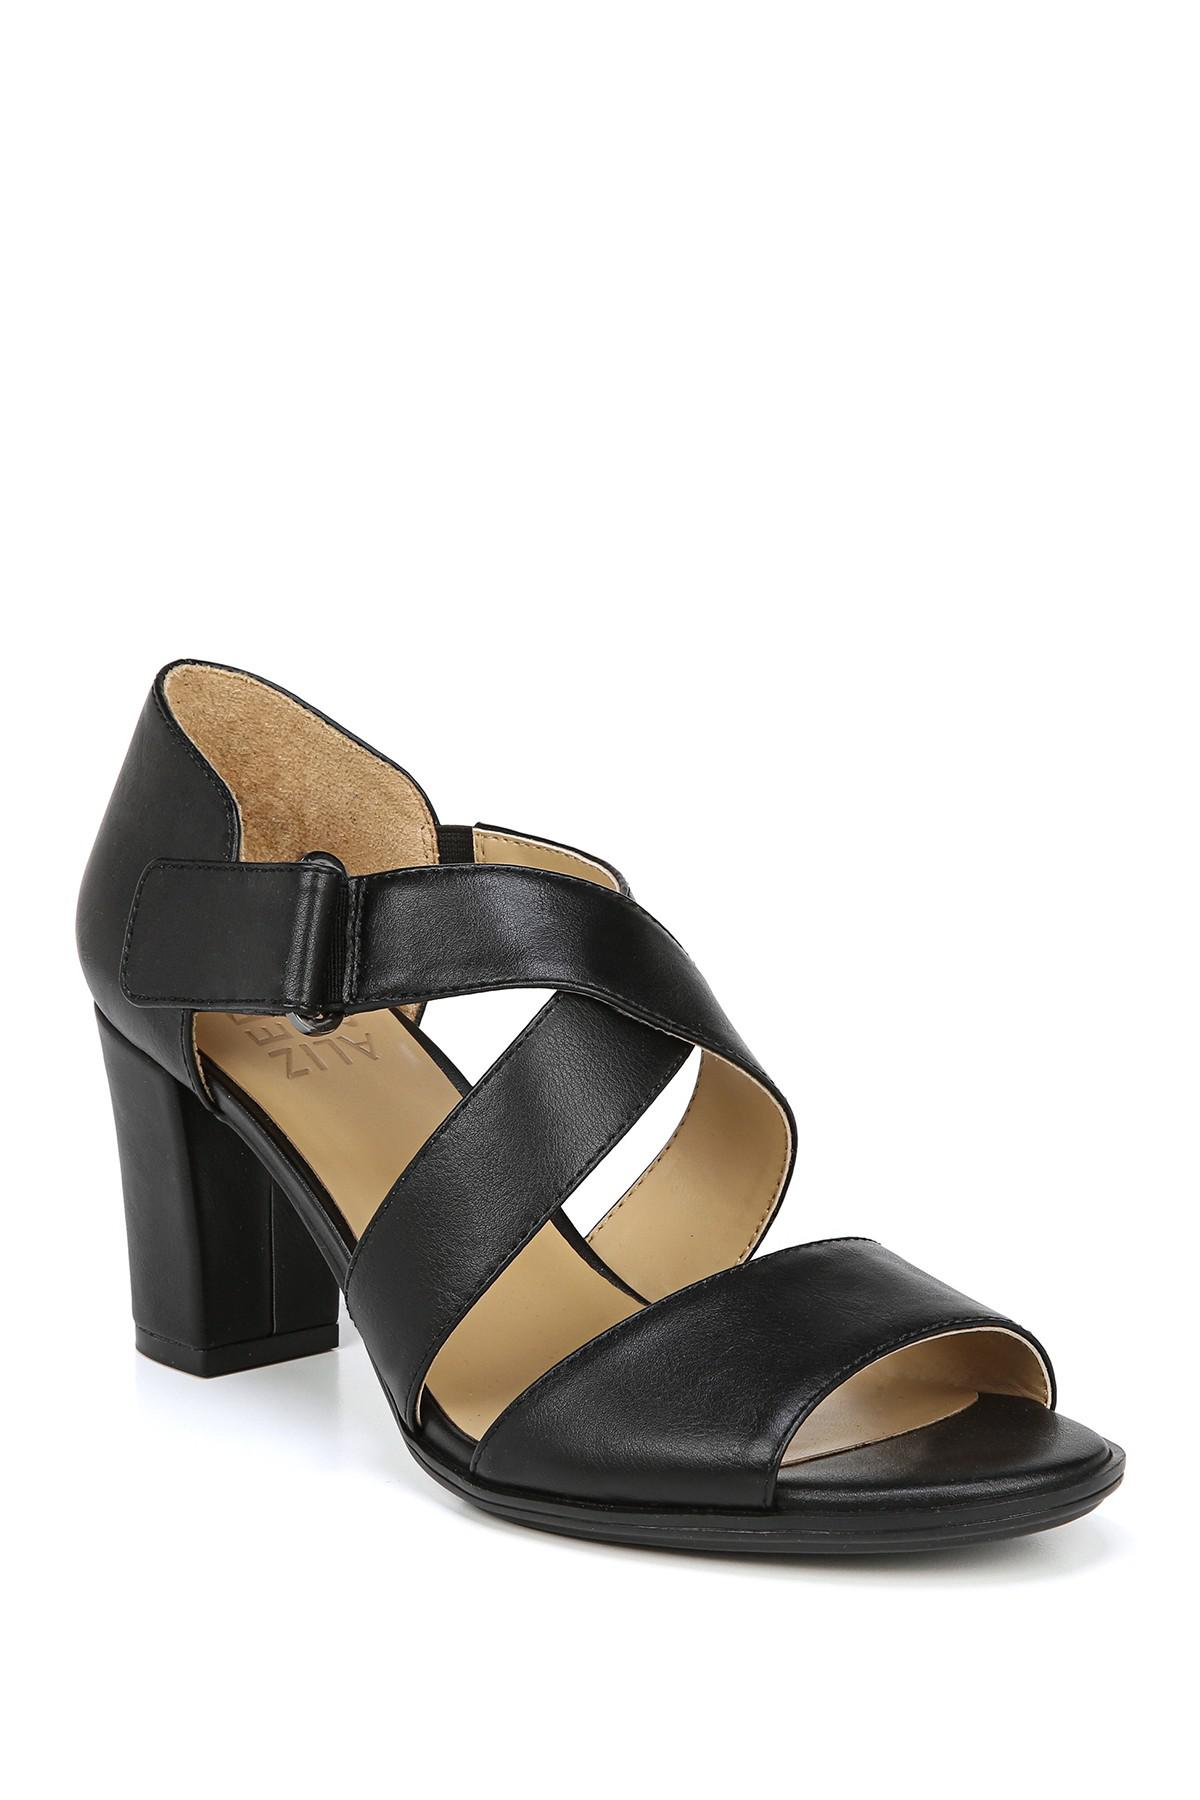 11bca4698744 Lyst - Naturalizer Lindy Sandal - Wide Width Available in Black